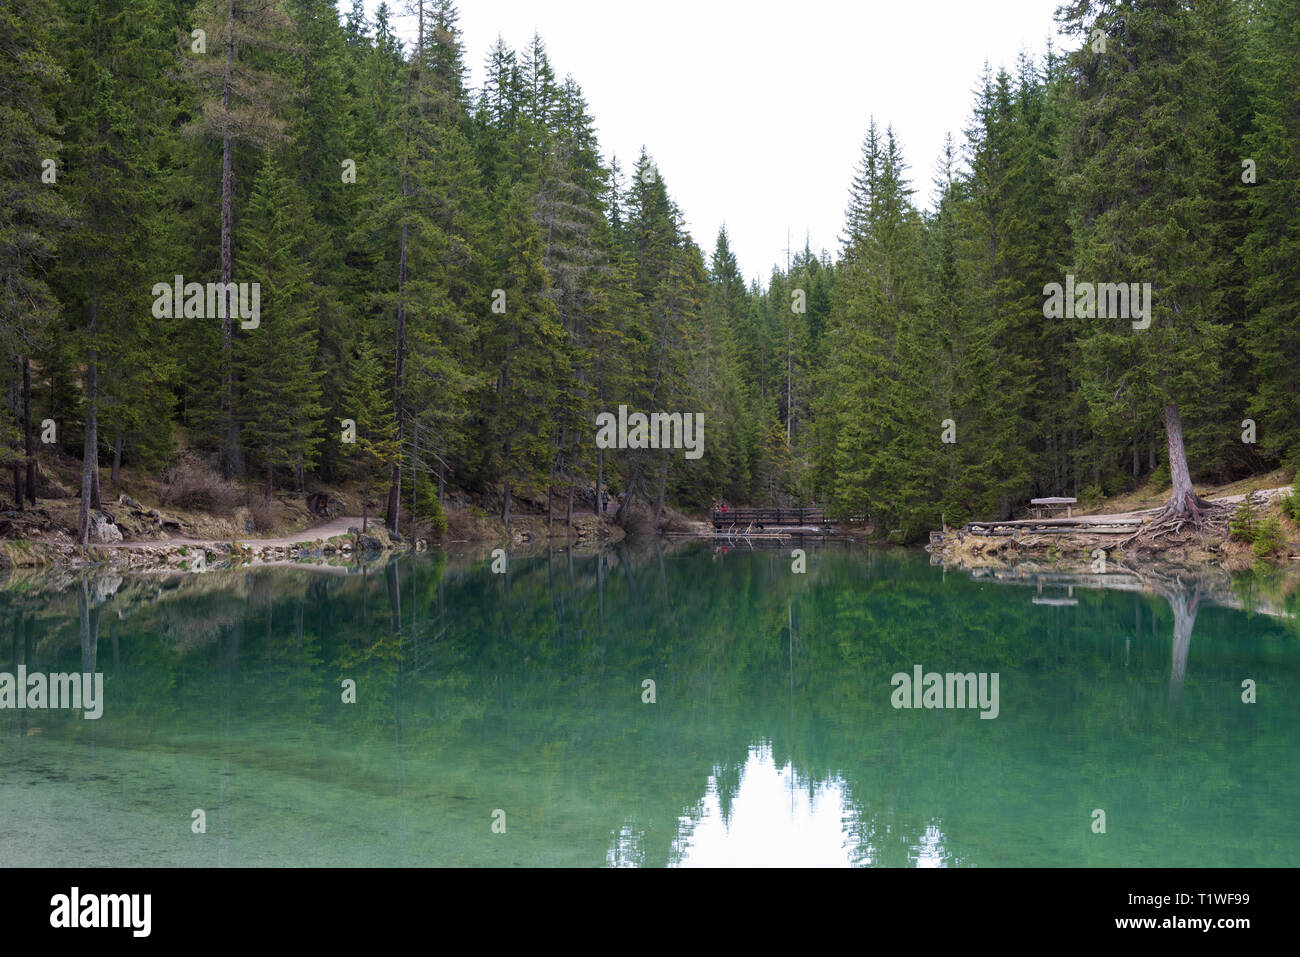 Idyllic lake in Dolomite Apls, Lago di Braies, South Tyrol, Italy - Stock Image